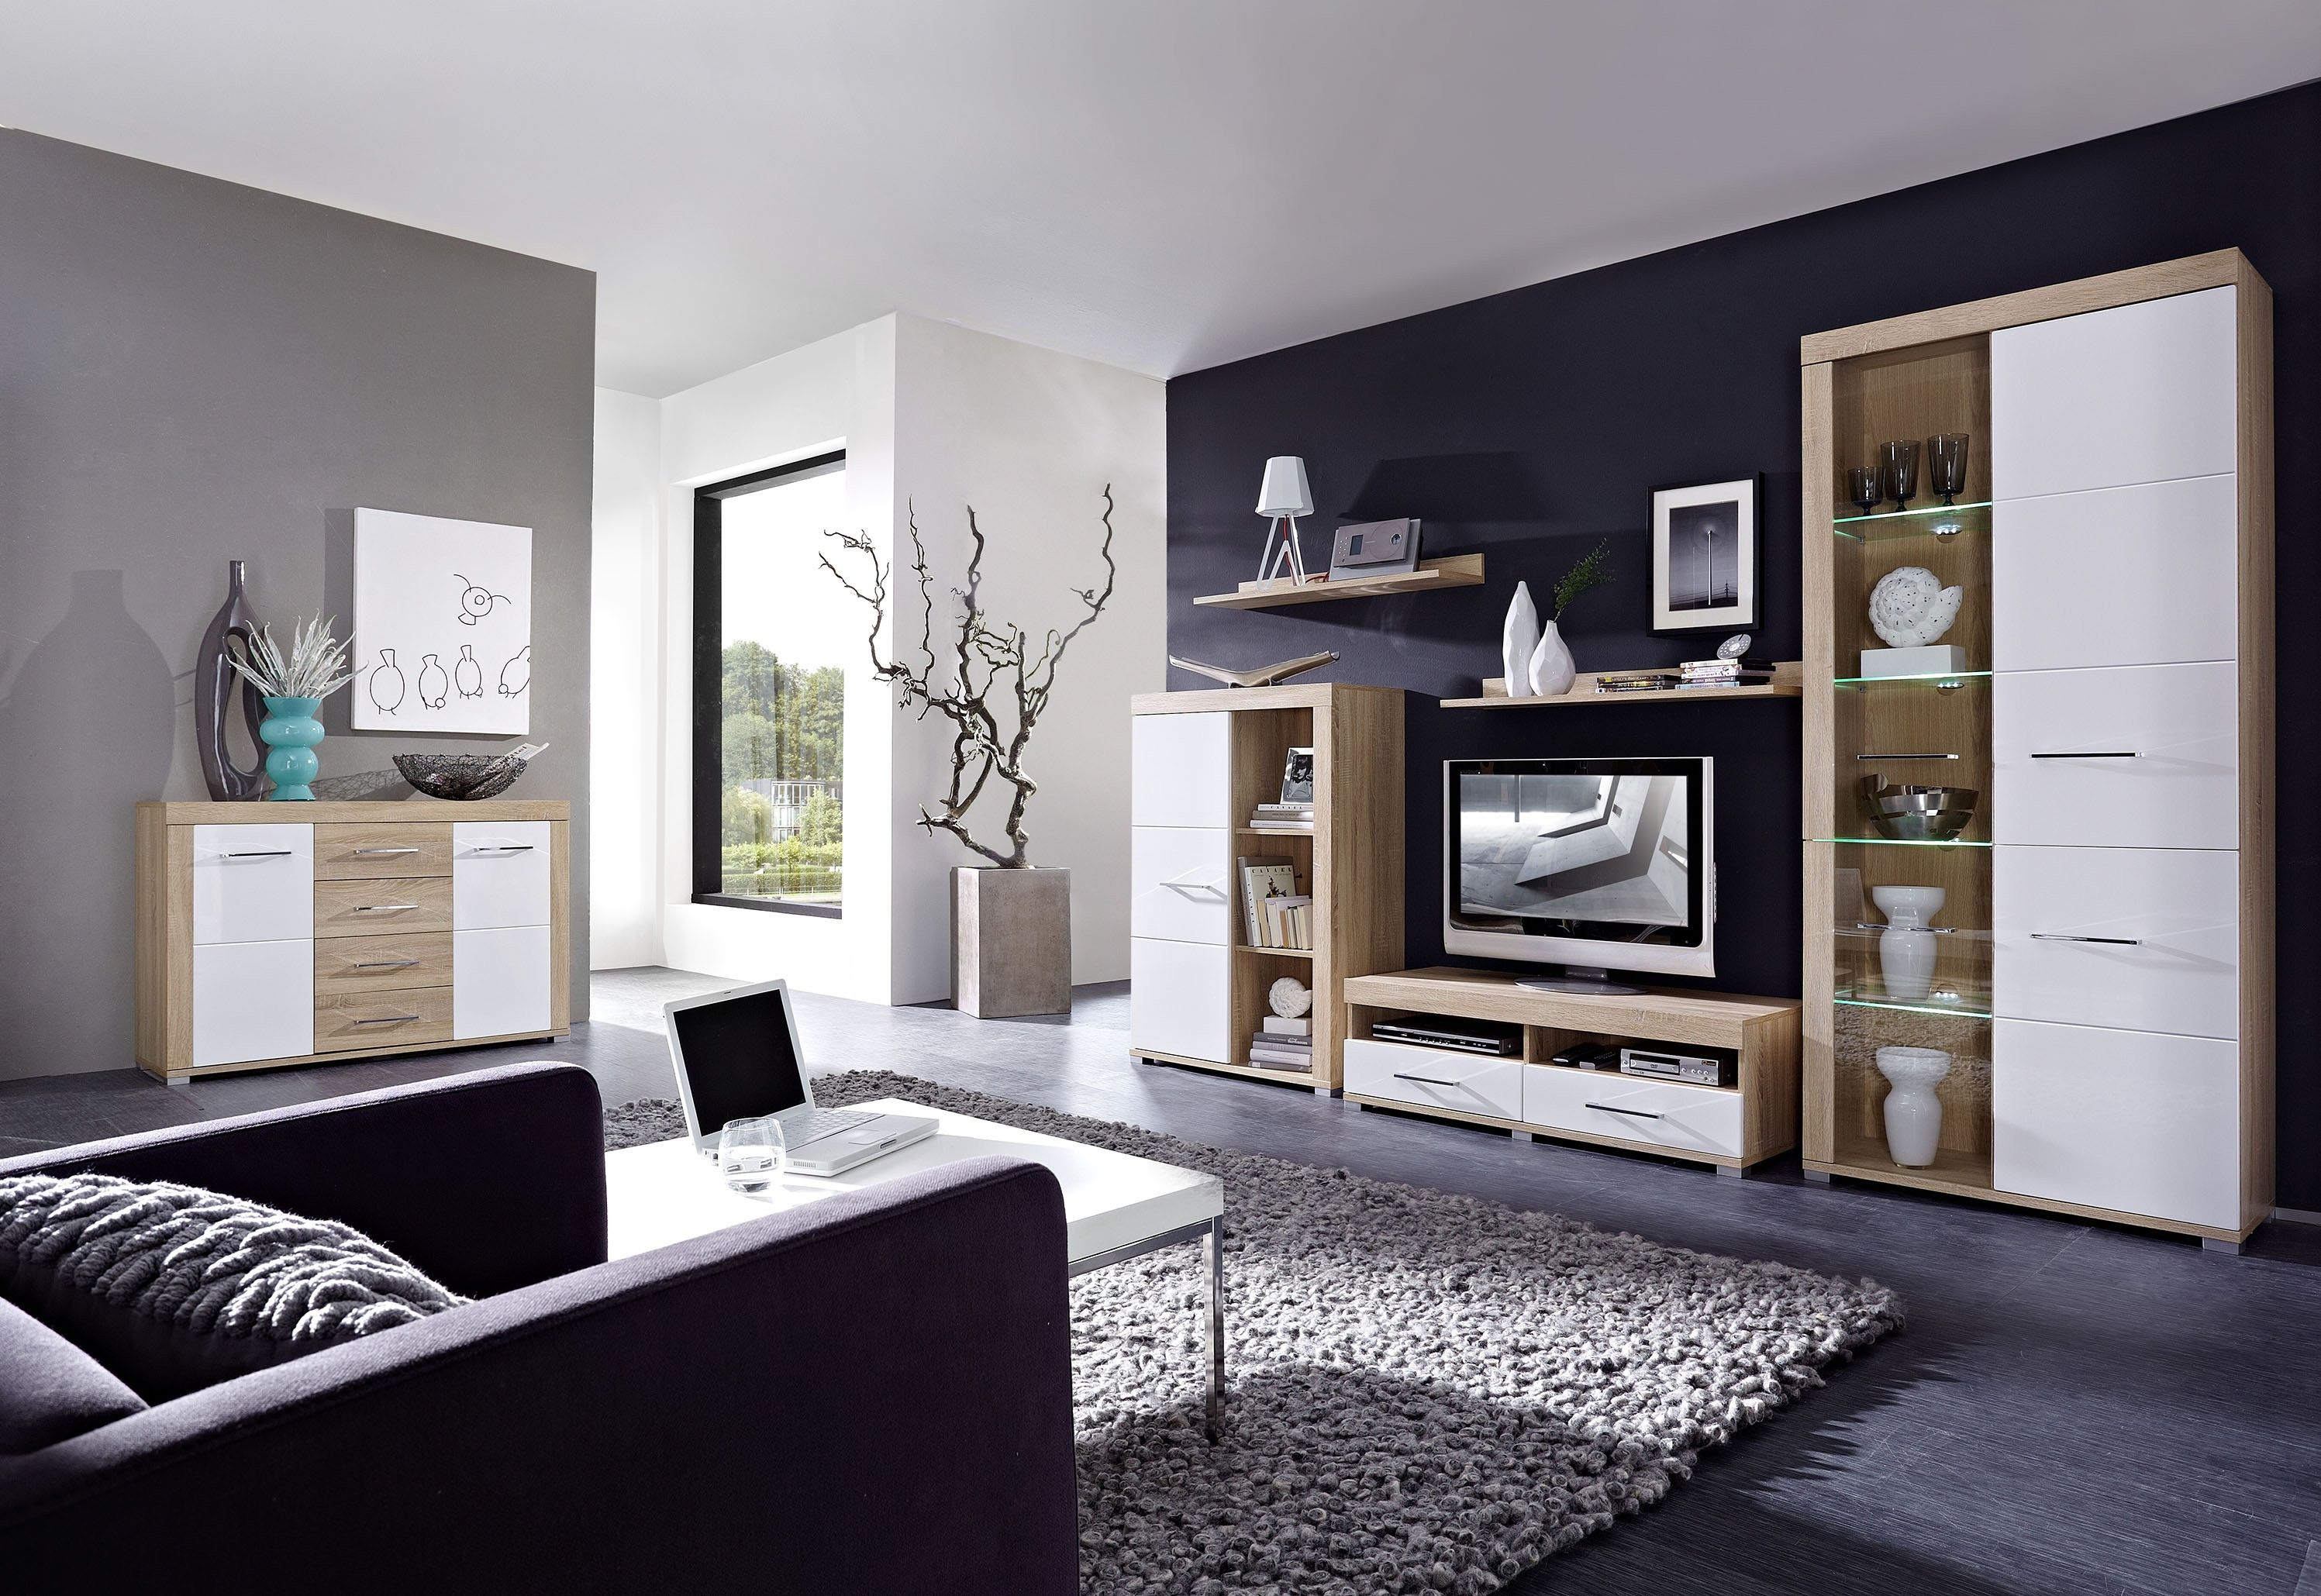 Moderne Wohnwand Inklusive Sideboard Sonoma Eiche Hell / Weiss Hochglanz  Inklusive Led Beleuchtung Woody 22